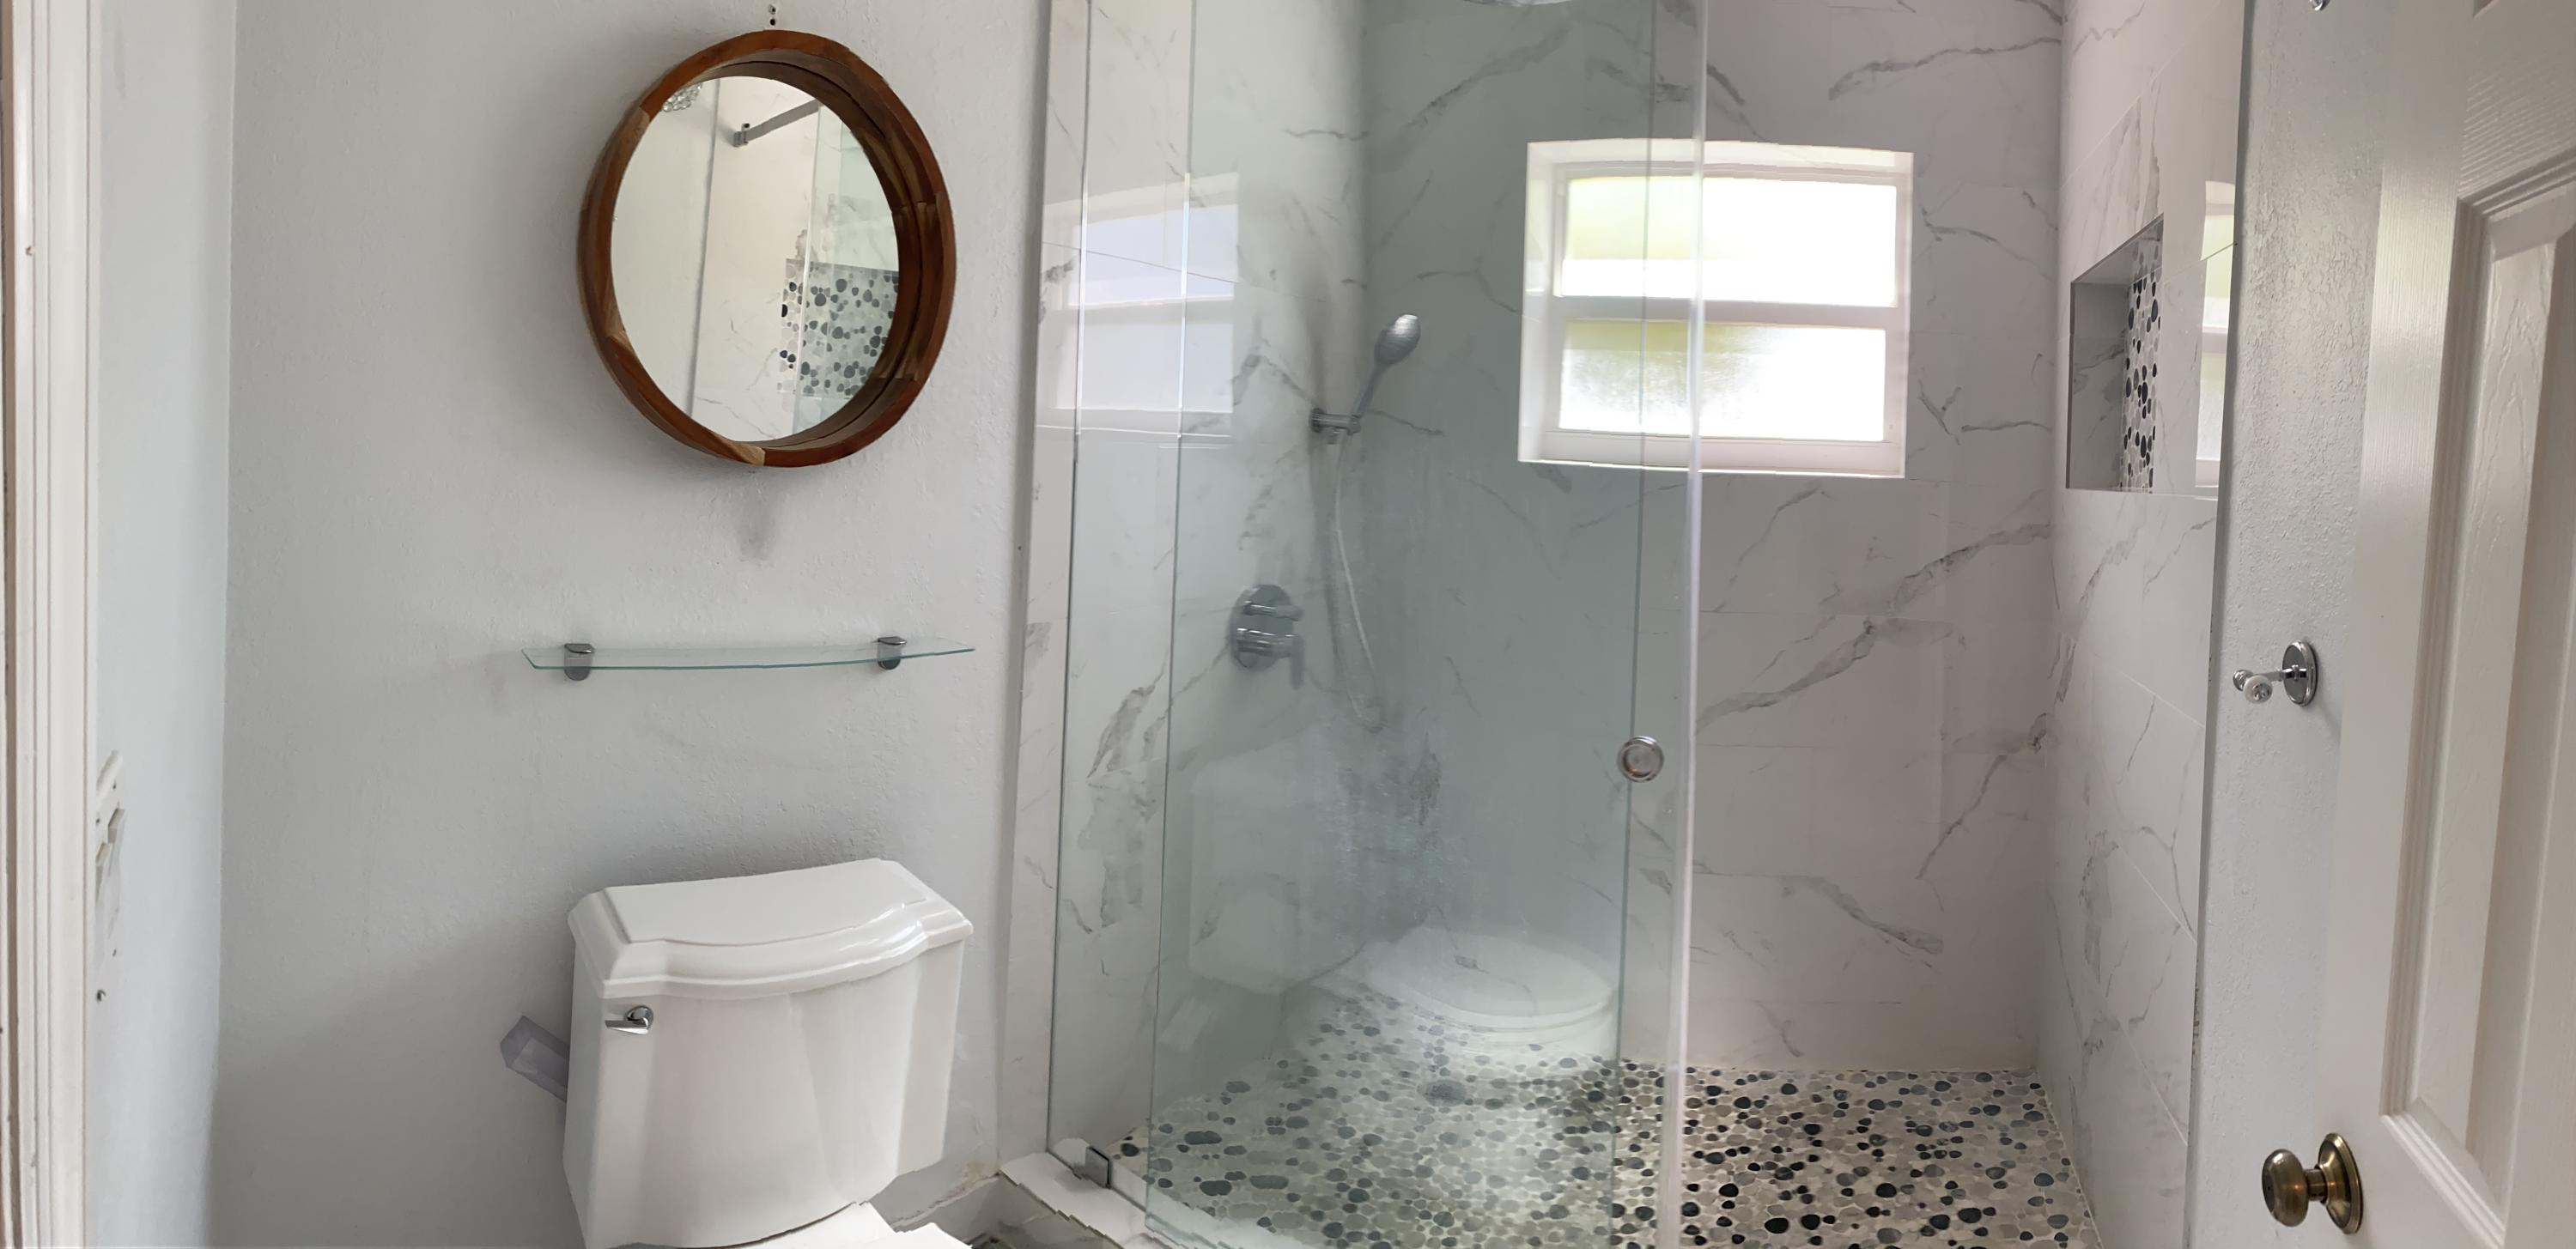 1245 Wiley Street, Hollywood, Florida 33019, 3 Bedrooms Bedrooms, ,3 BathroomsBathrooms,Residential,for Rent,Wiley,RX-10643310, , , ,for Rent